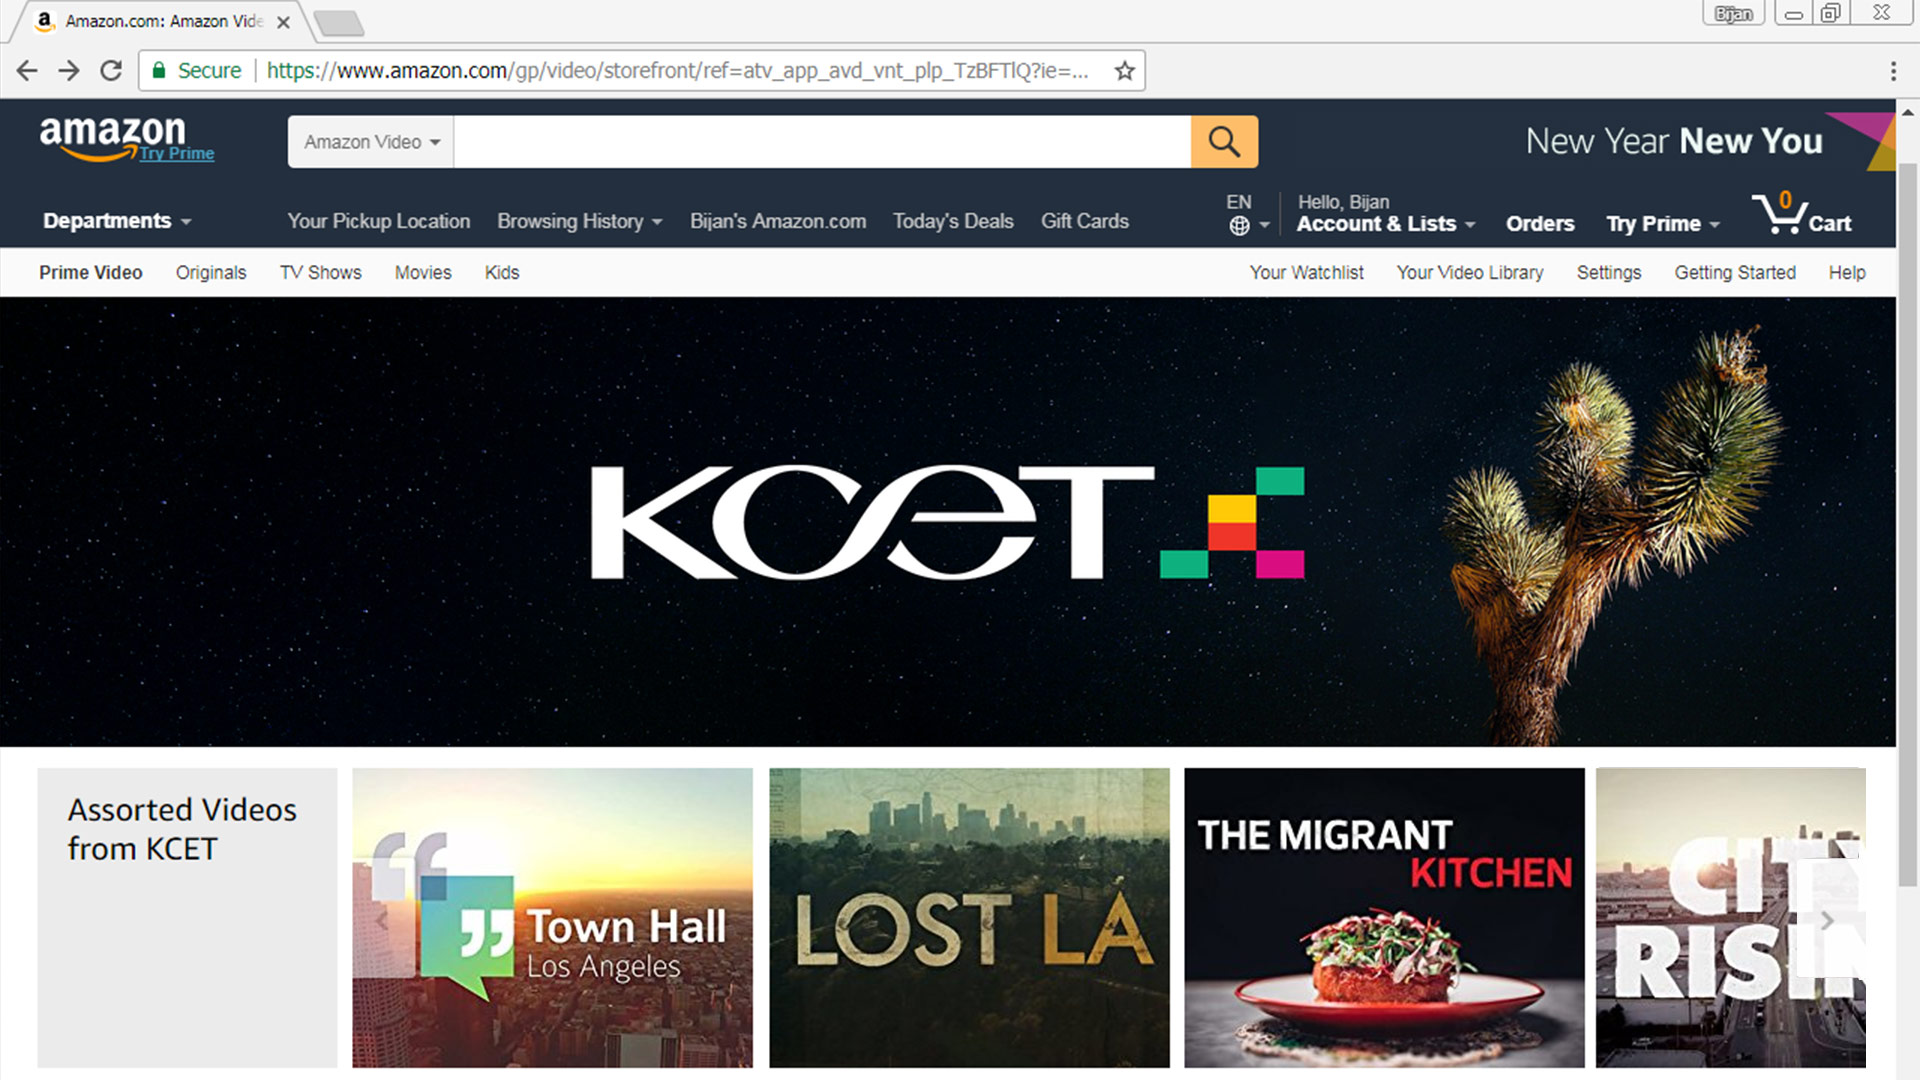 Screenshot of KCET on amazon.com